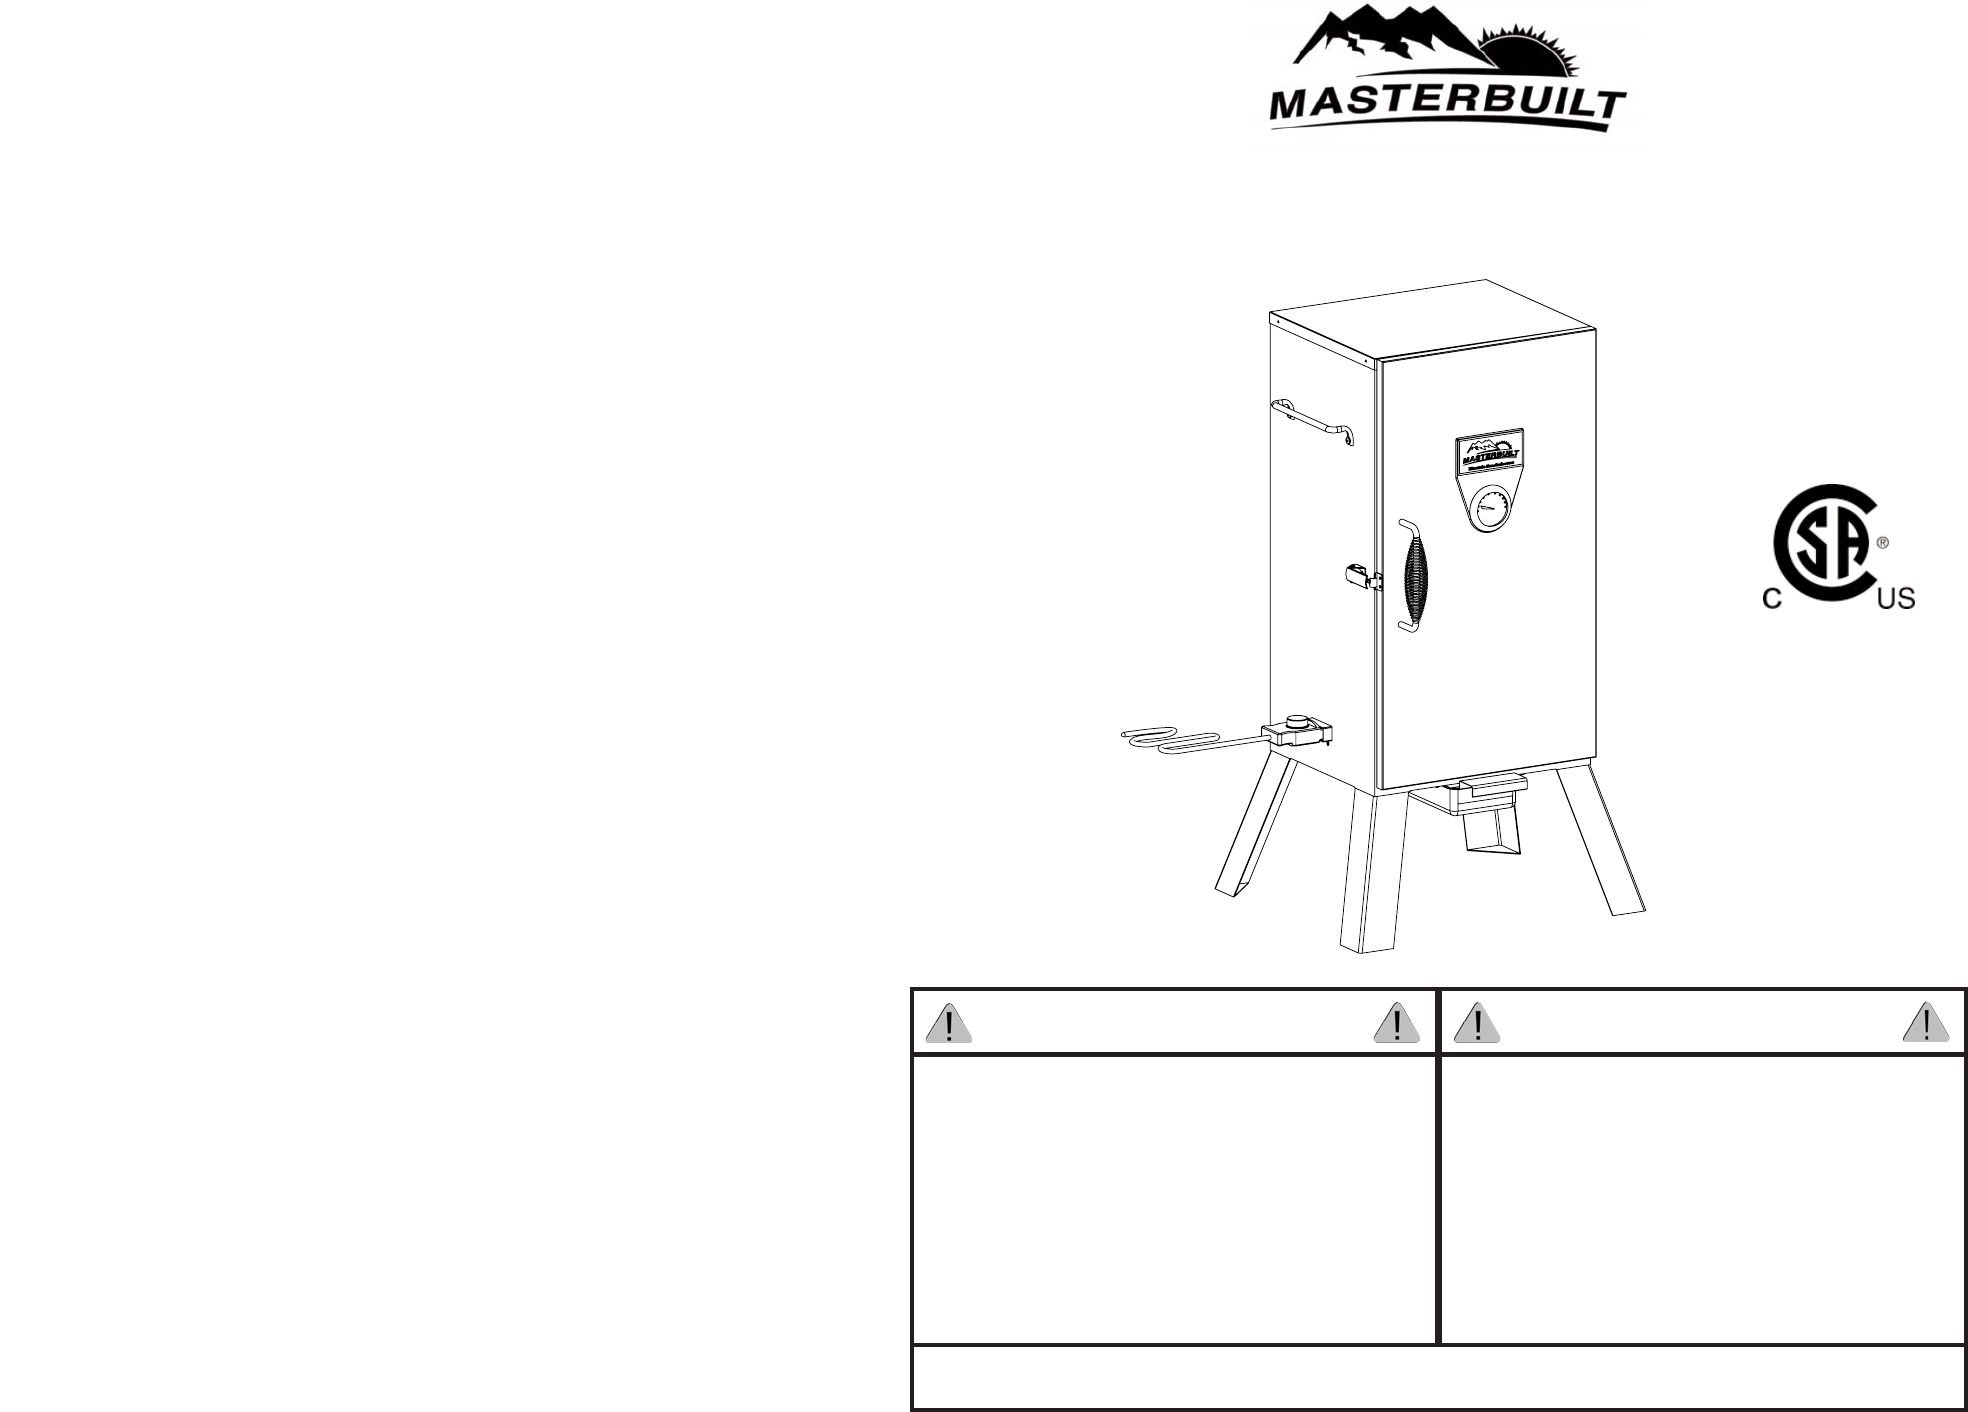 Masterbuilt Electric Smoker Parts 20070410 Manual Guide